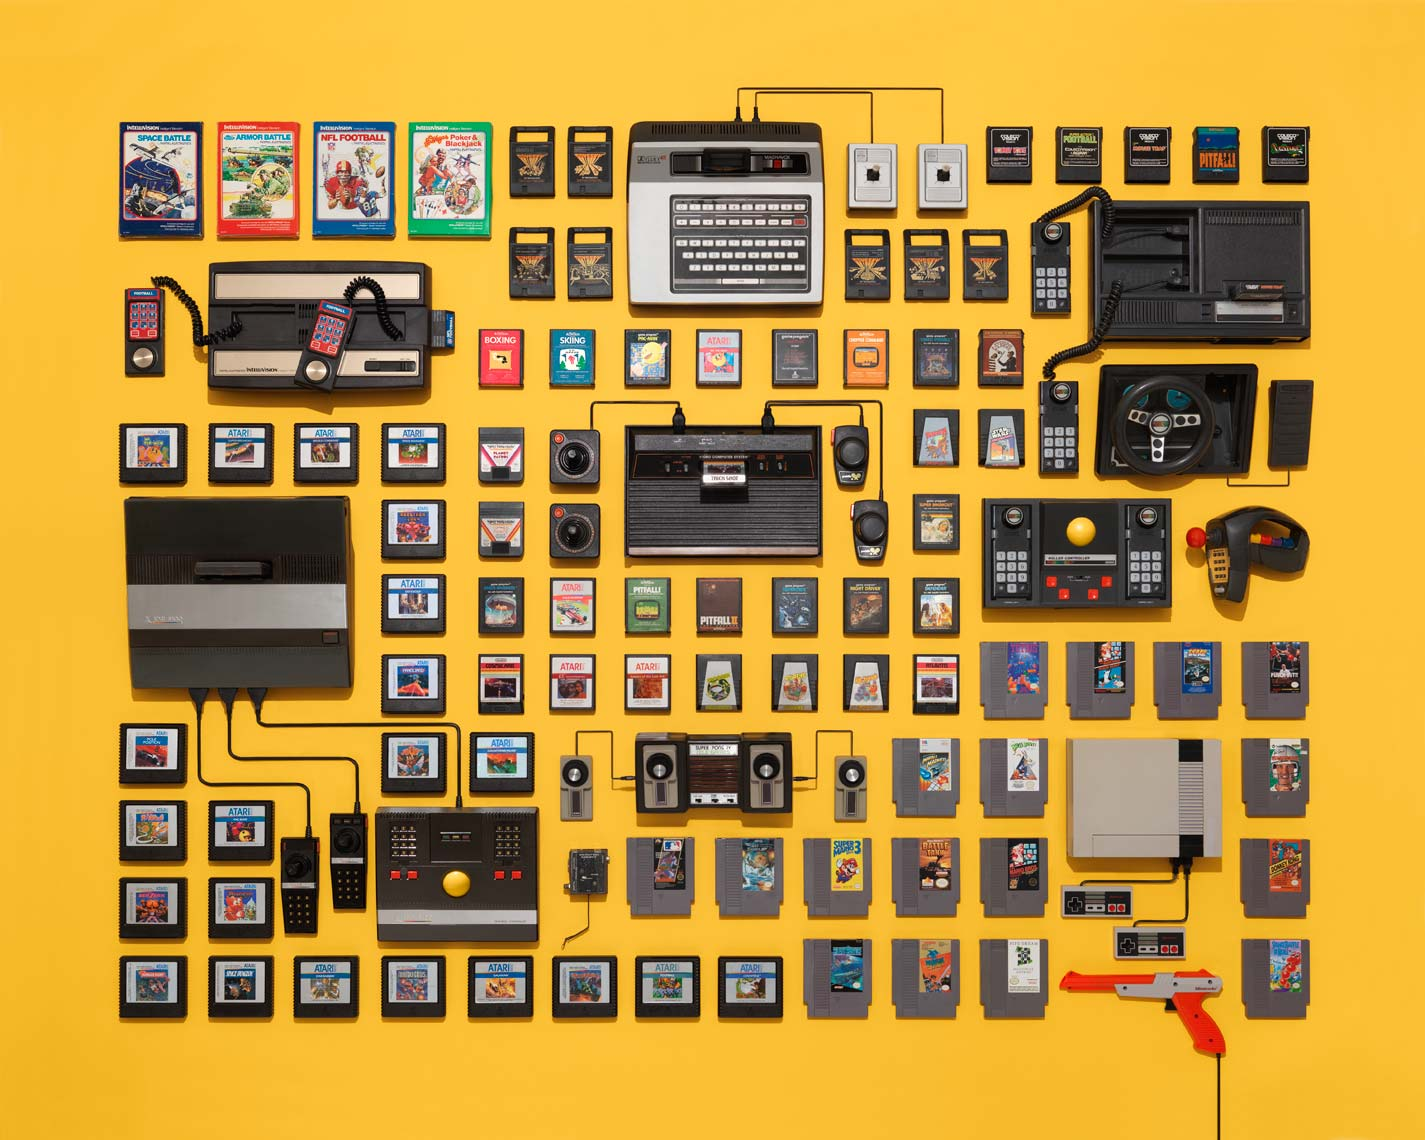 vintage video game consoles and cartridges on a yellow background